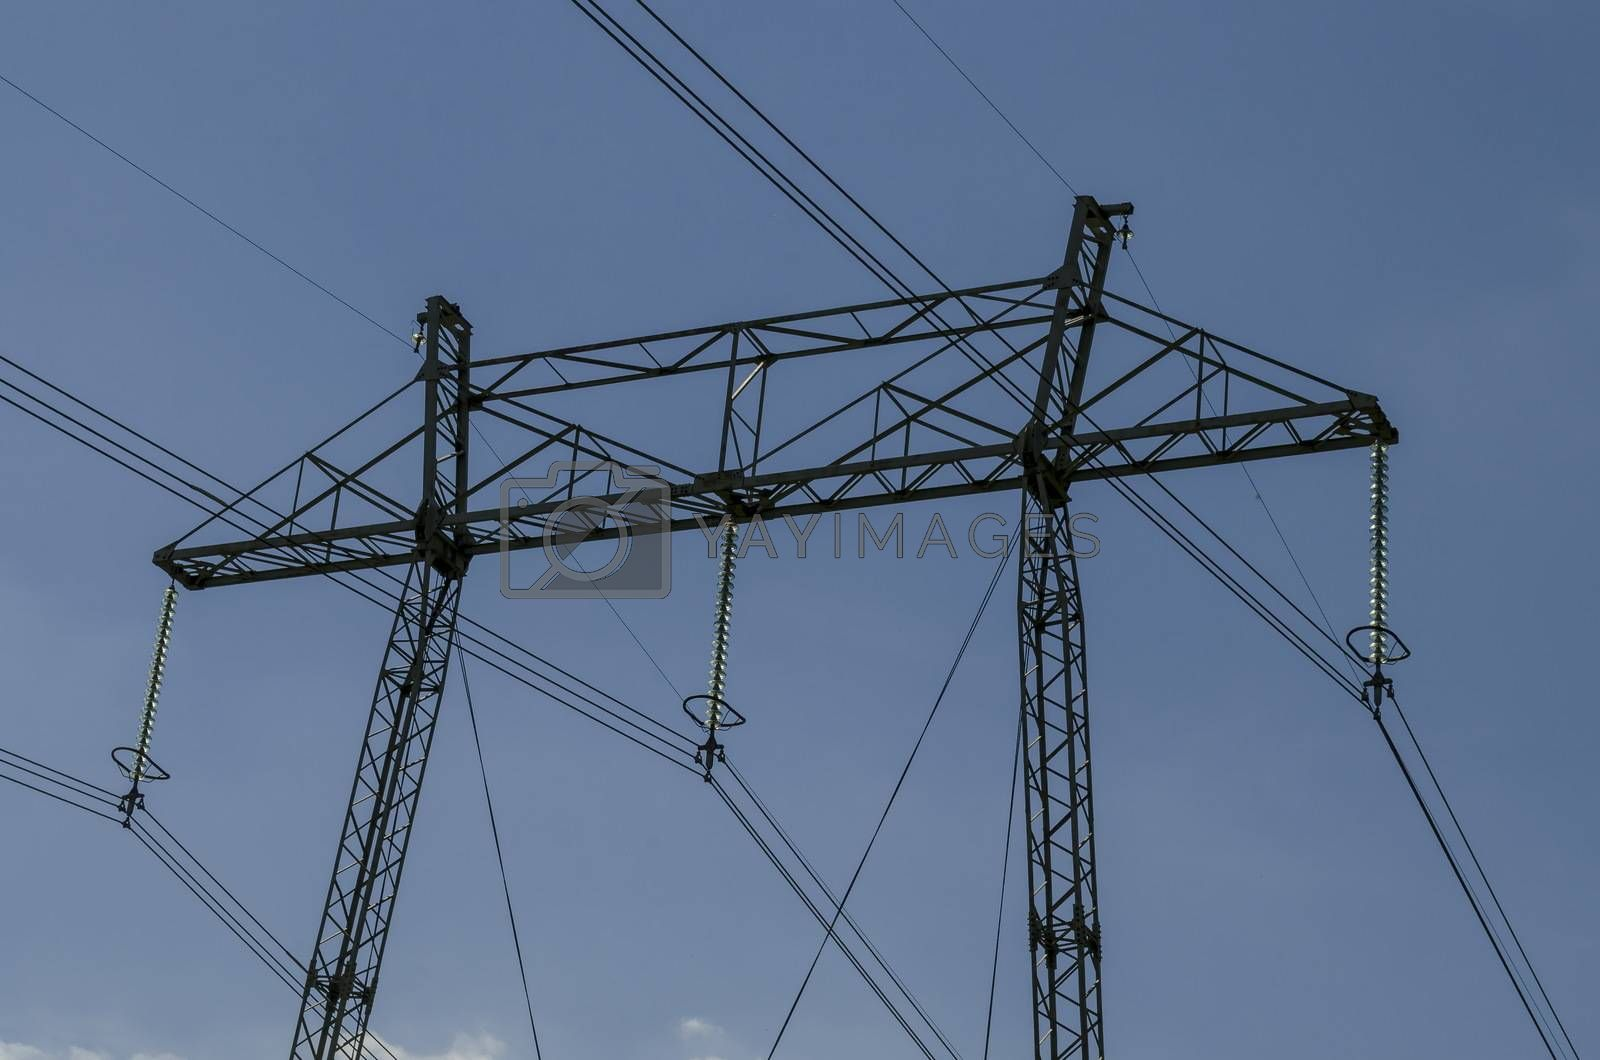 Upper part of electric power transmission line, Plana mountain, Bulgaria